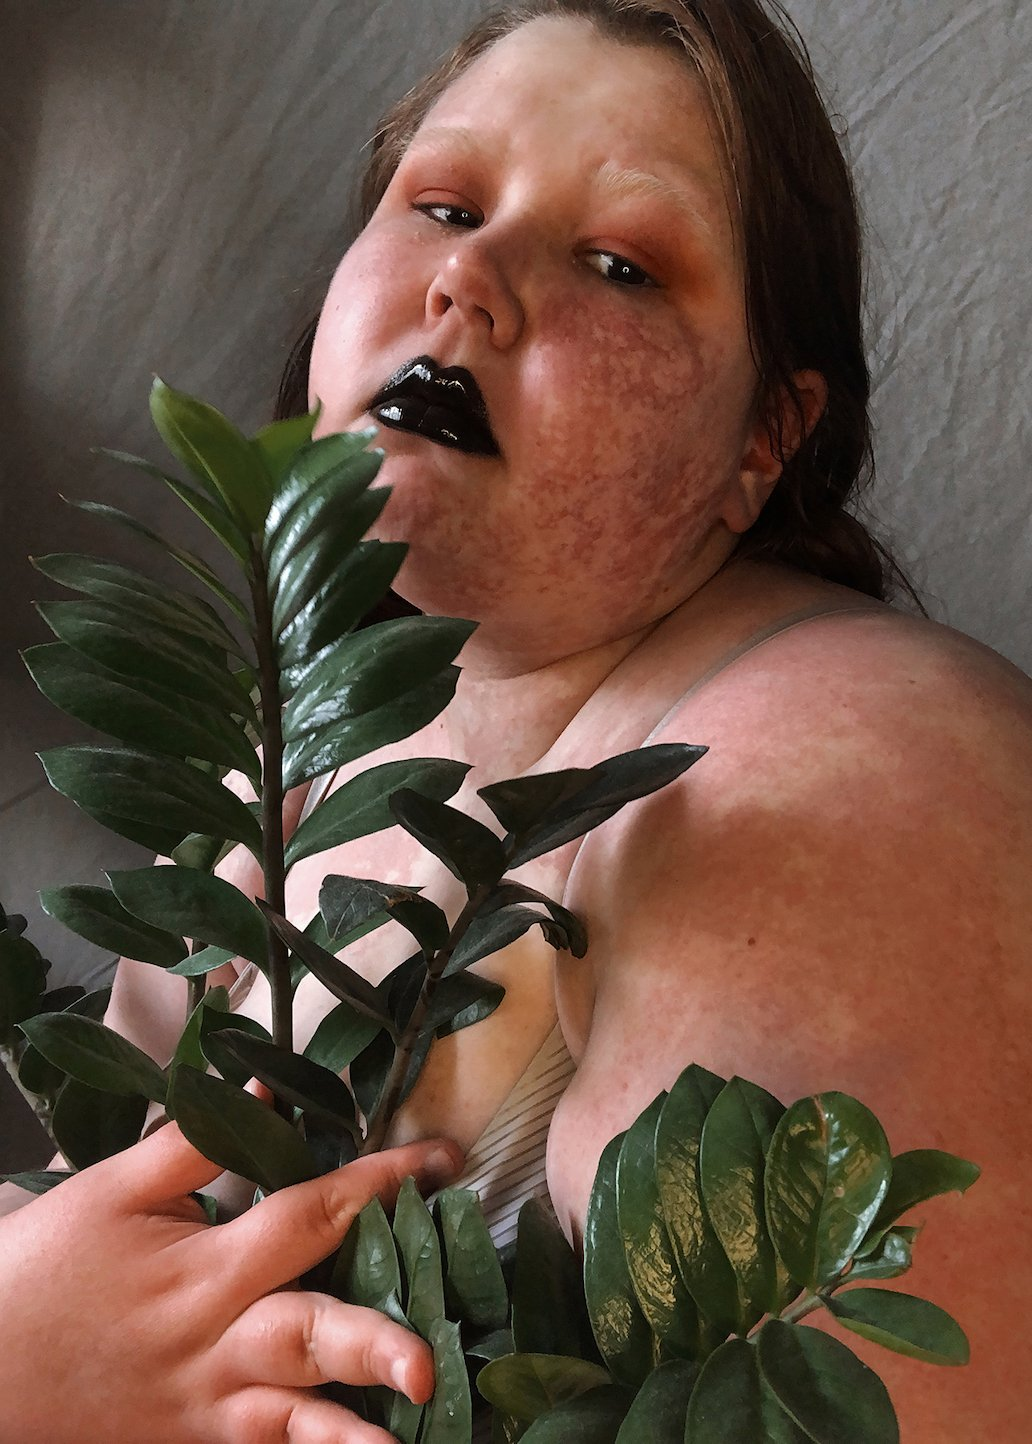 <p><b></b></p>  <p><span>This is a self-portrait by Miliyollie, a body-positivity activist and photographer based in St Petersburg. Miliyollie's work pushes back against the rigid boundaries of Russia's conservative patriarchy, documenting the country's body-positive, feminist, and queer communities, and proving that all bodies deserve equal respect and representation. </span></p>